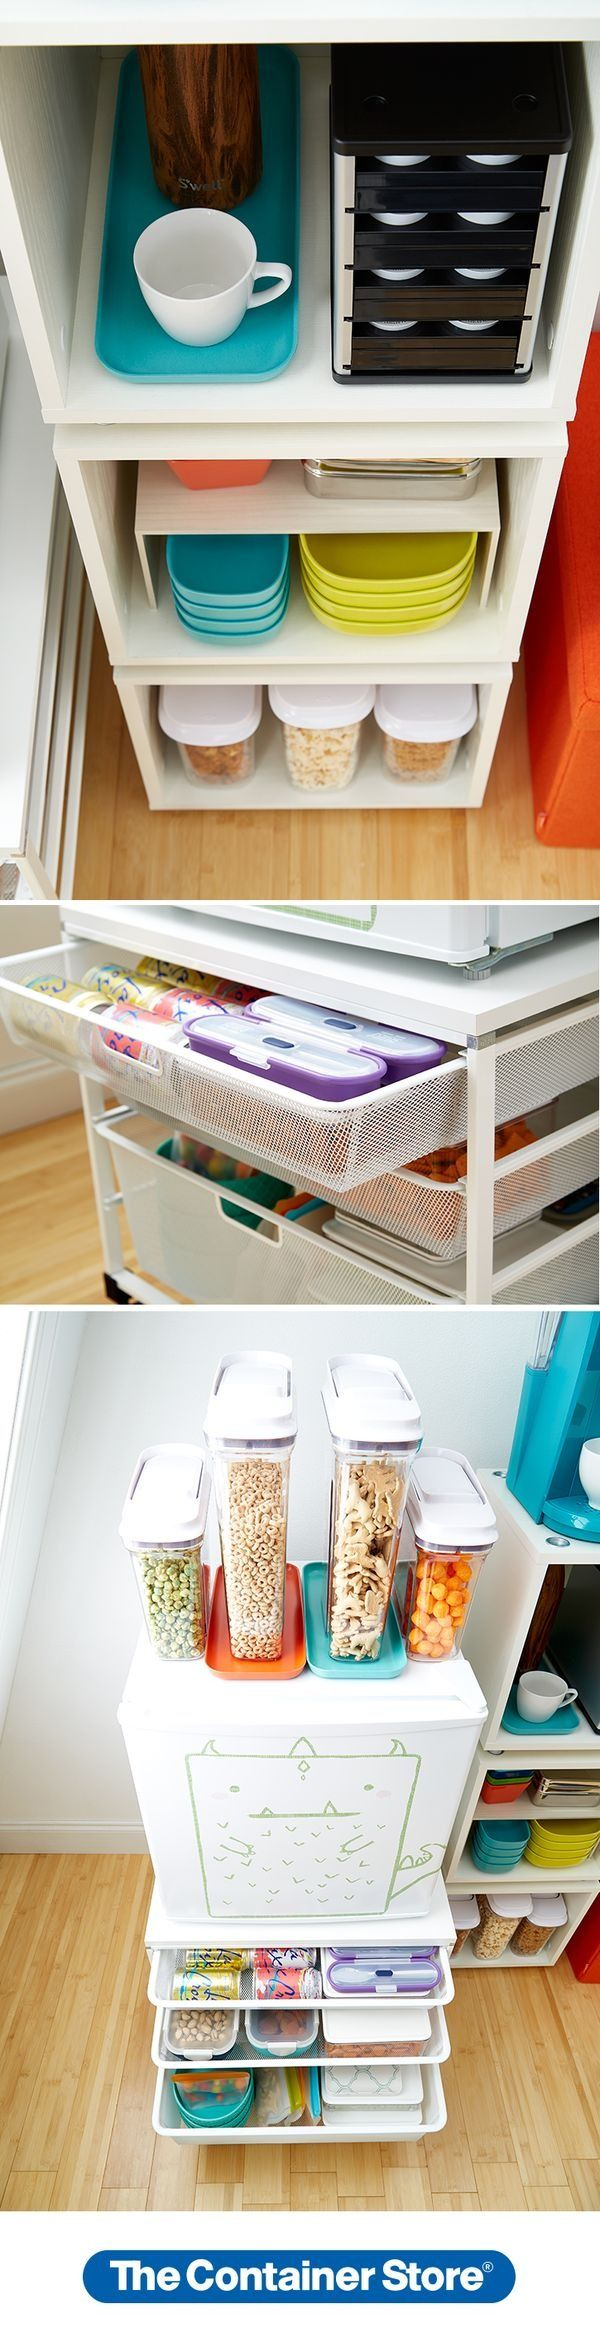 Our Vario Shelves to form a tower of storage. Our elfa Fridge Cart holds  your fridge and has drawers for snacks and utensils.